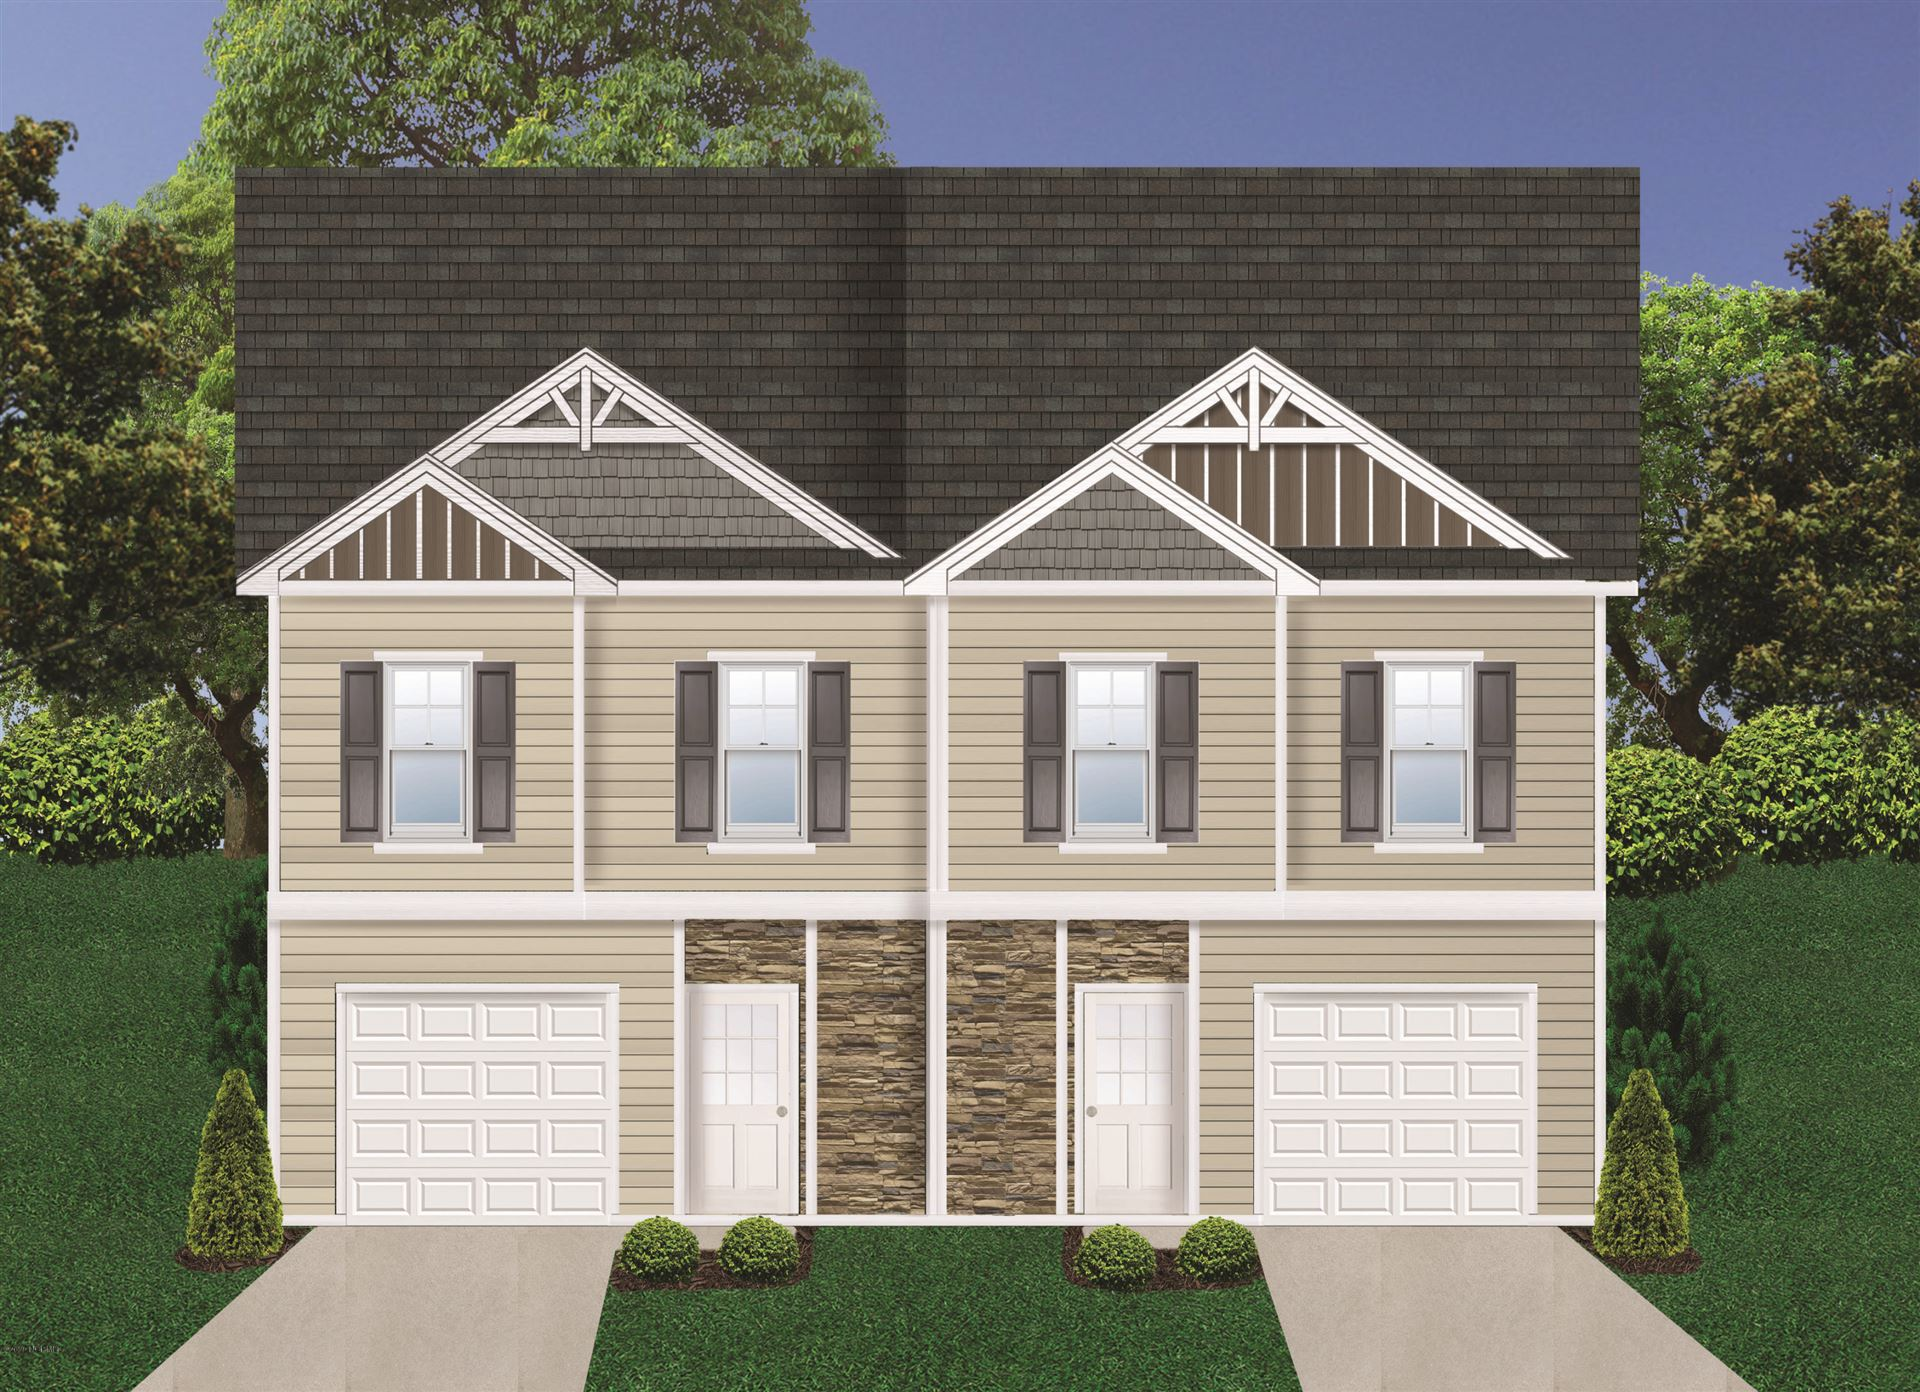 Photo for 401 Vandemere Court, Holly Ridge, NC 28445 (MLS # 100264073)